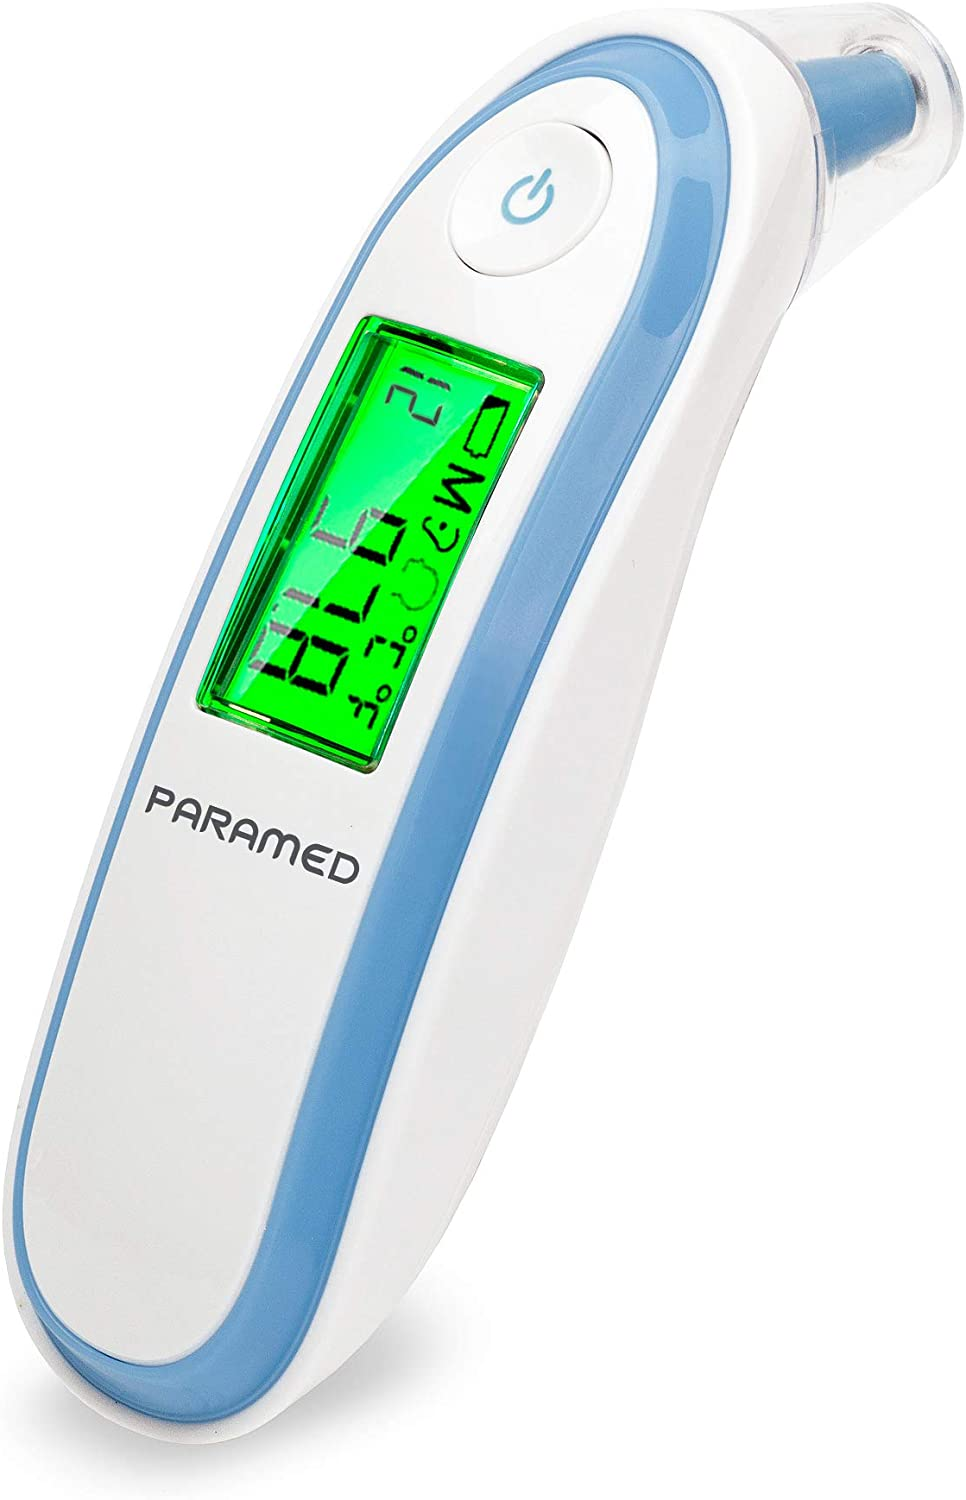 Digital Forehead and Ear Thermometer by Paramed - Instant Scan Dual Function Baby Infrared Medical Thermometer - Backlight Display with Fever Alarm - Clinically Calibrated for Adult Kids Infant - 2019